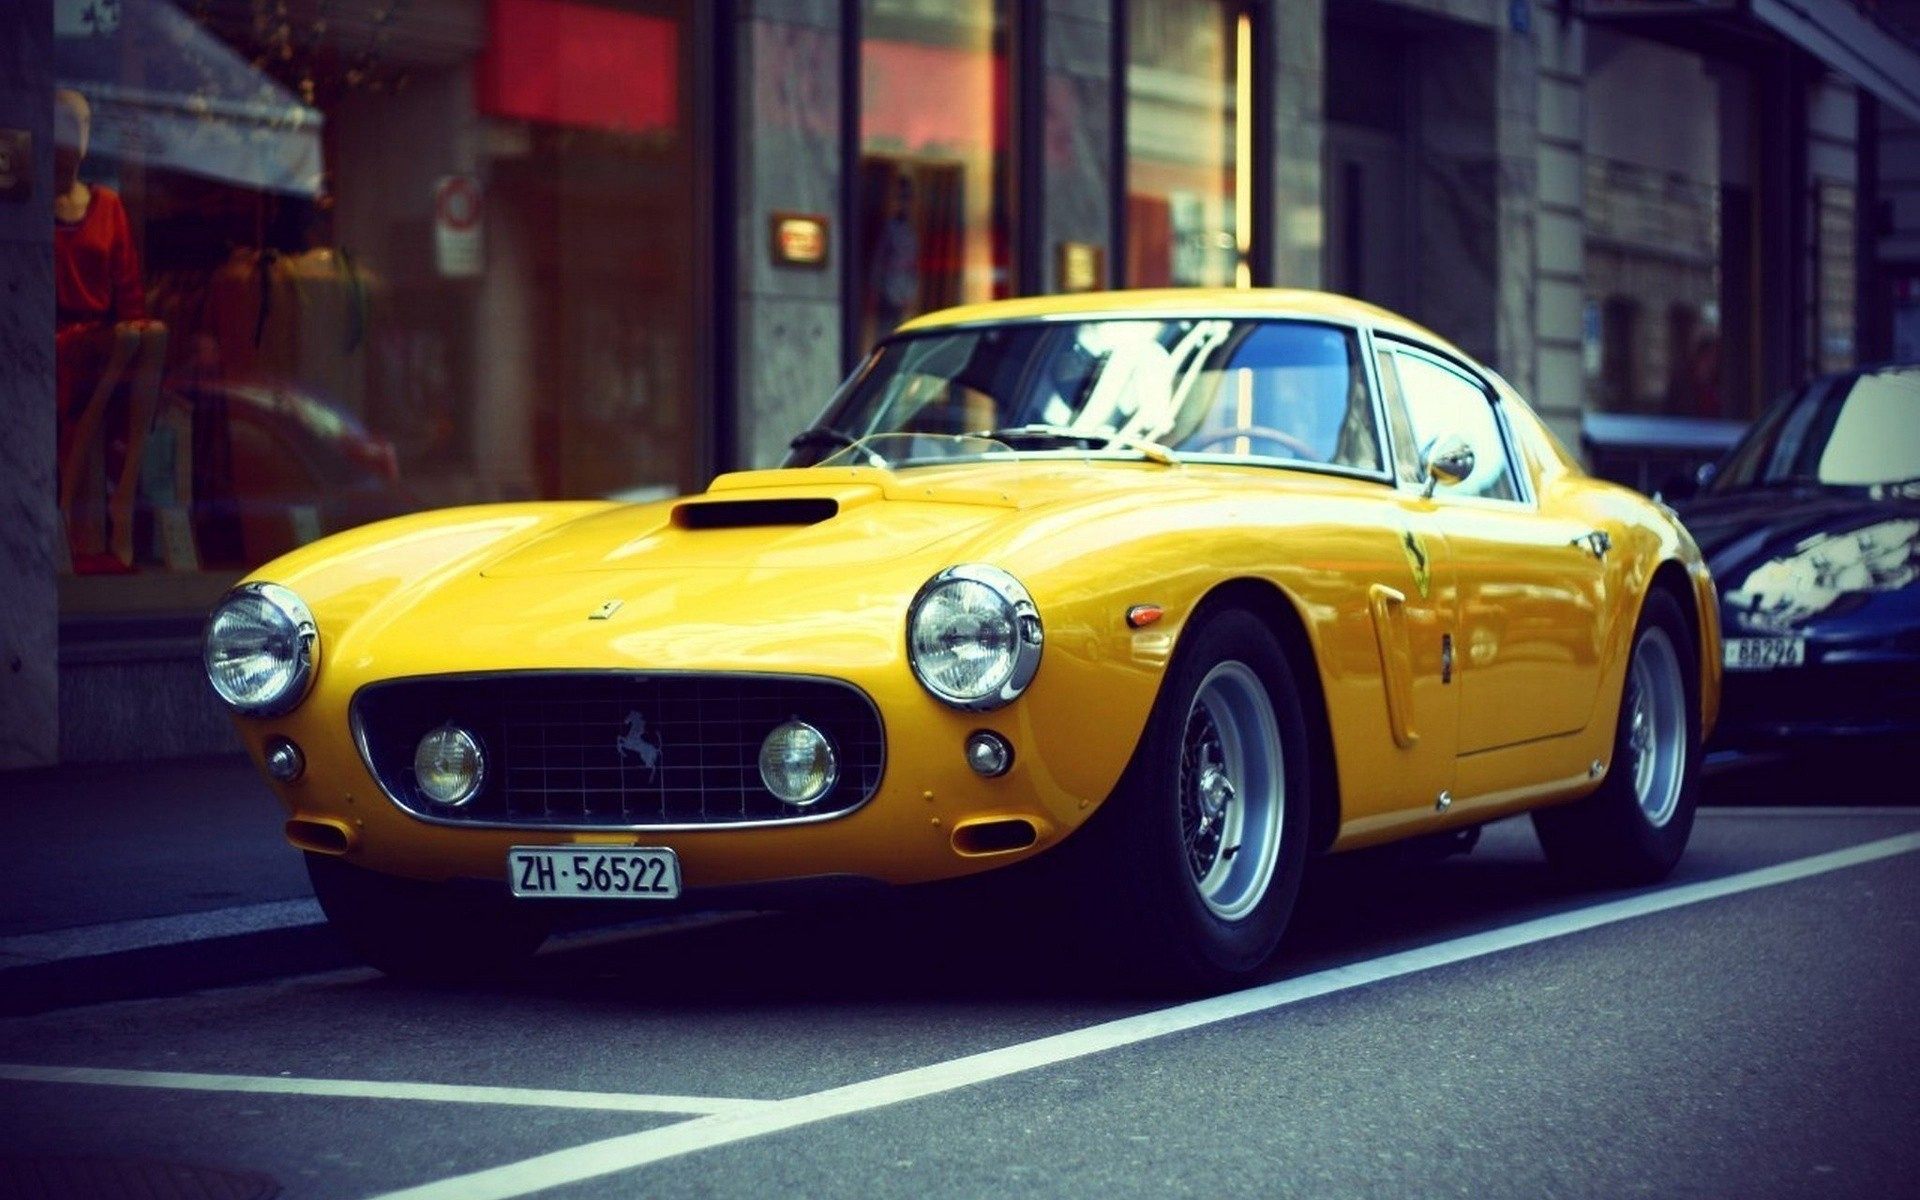 Ferrari Classic Car Photo Street City London Hd Wallpaper